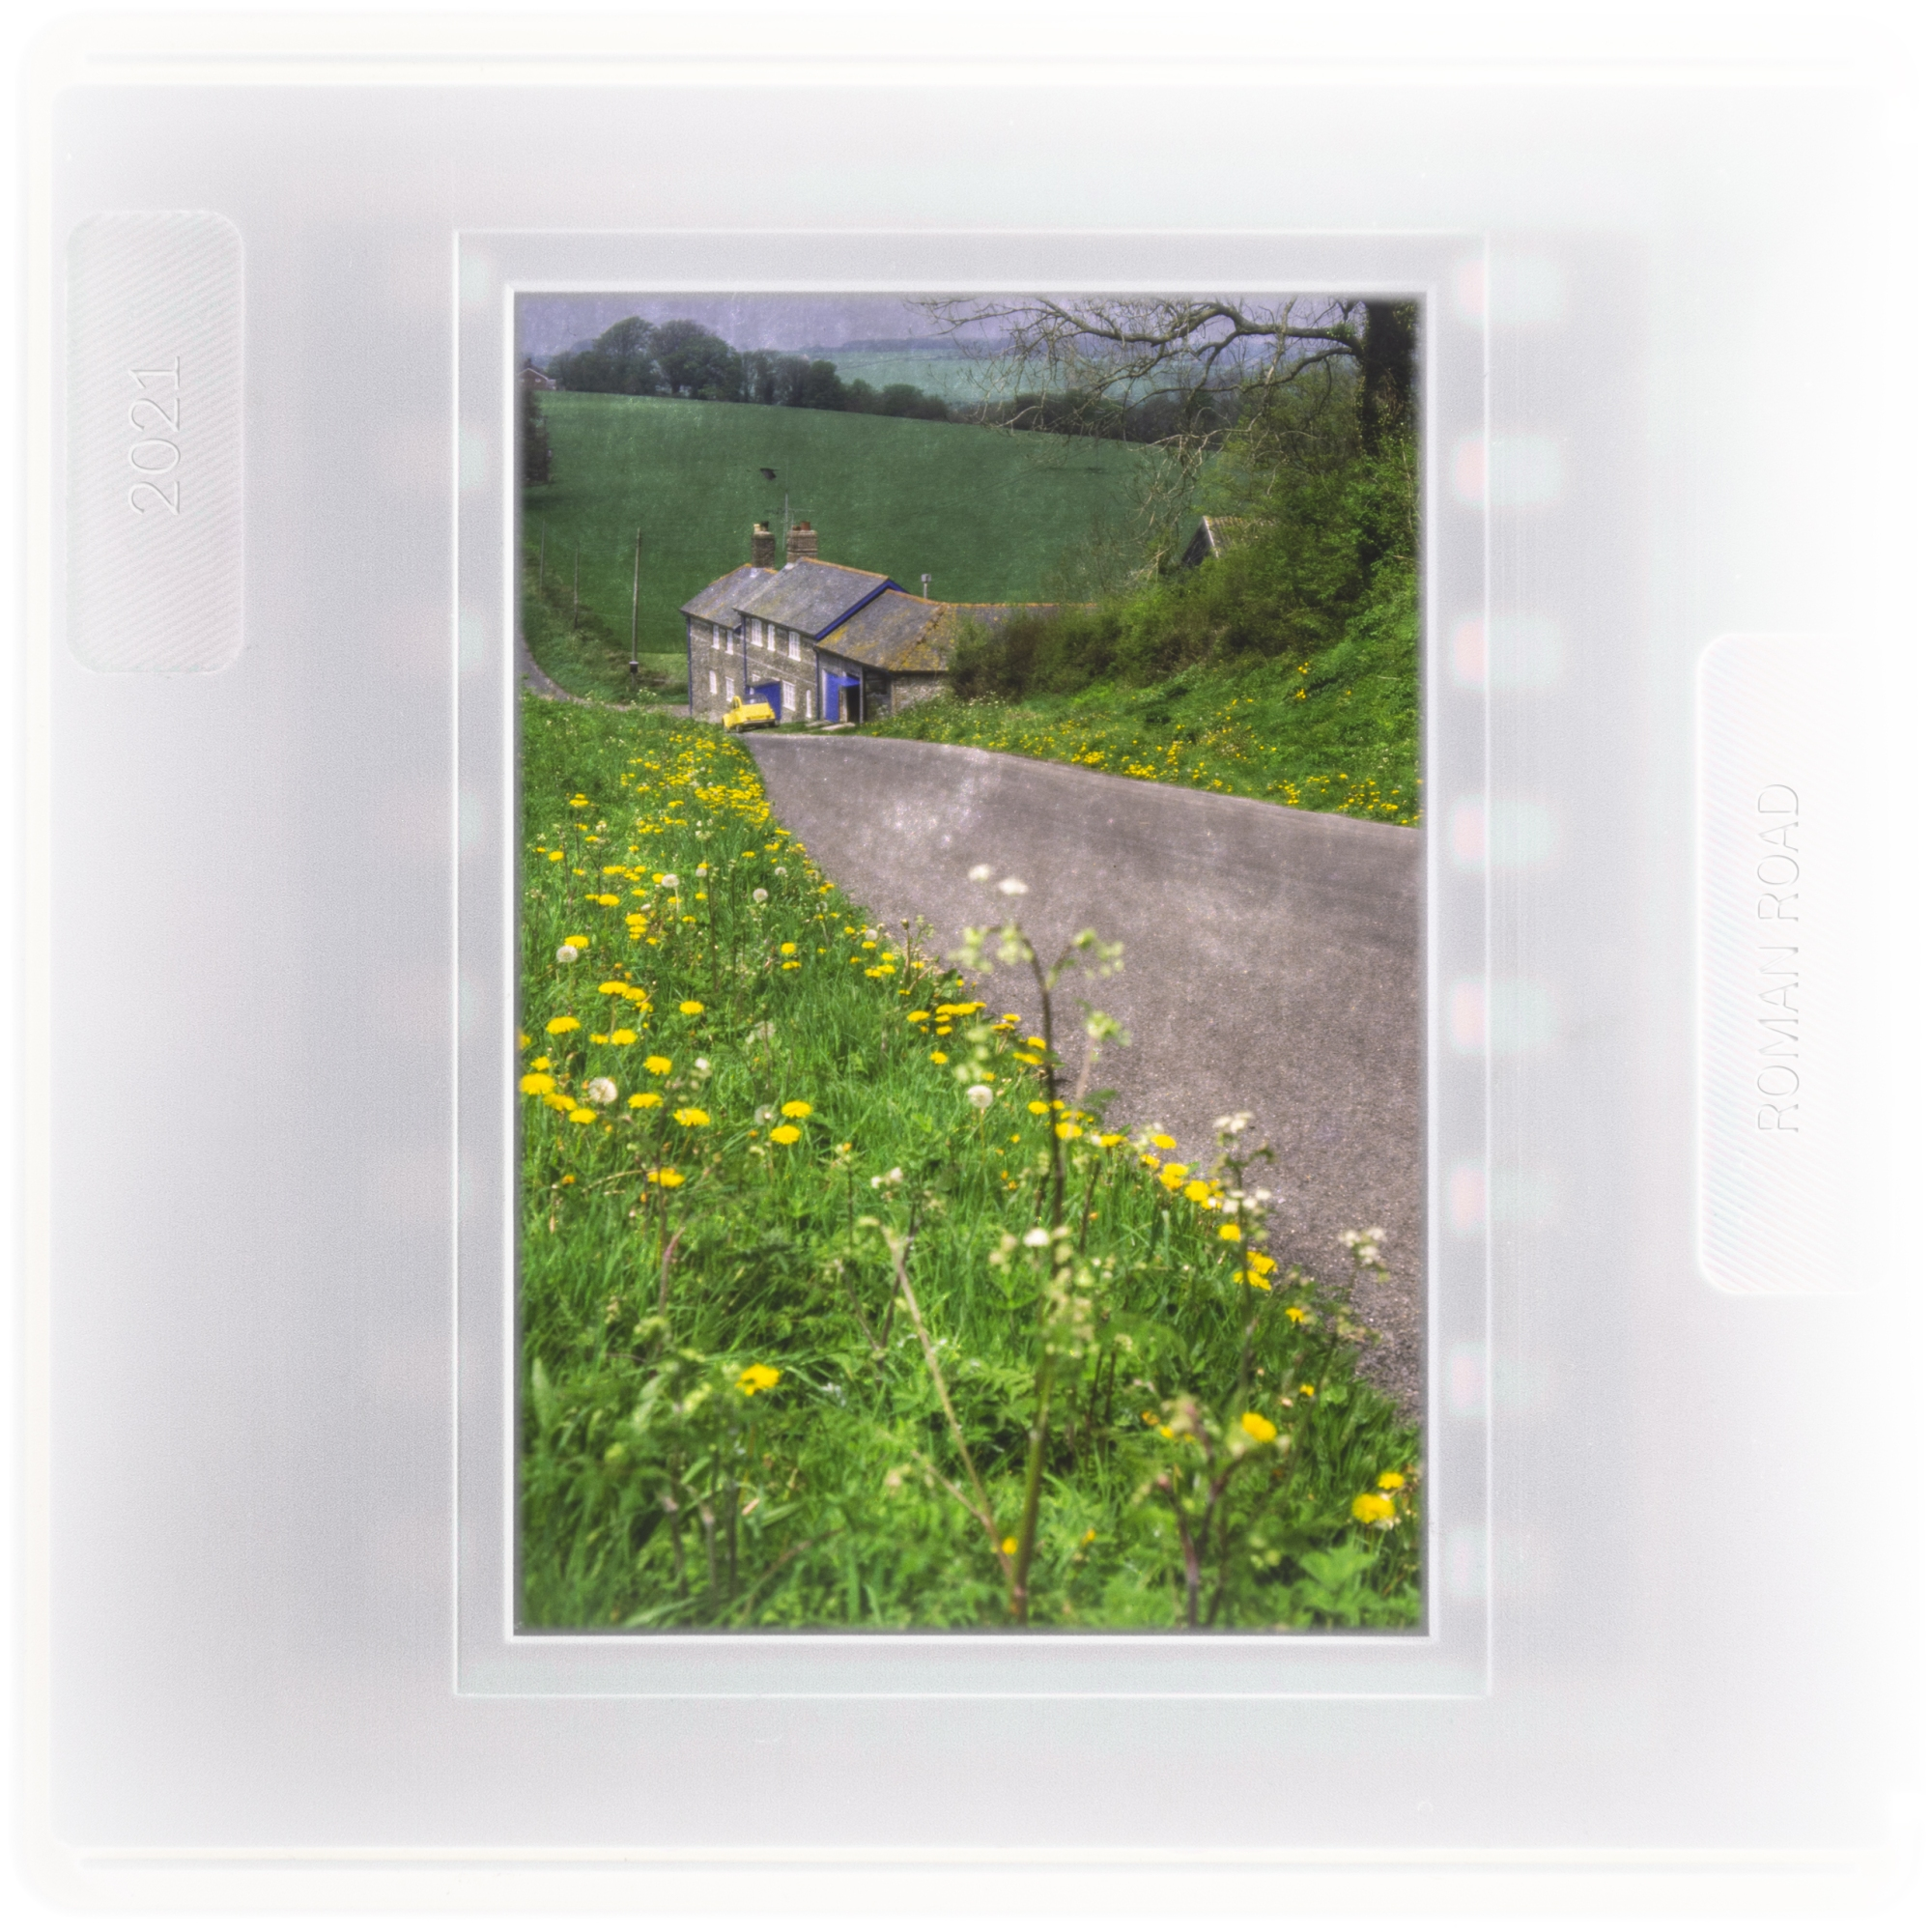 A road running through the Dorset countryside showing the roadside flowers